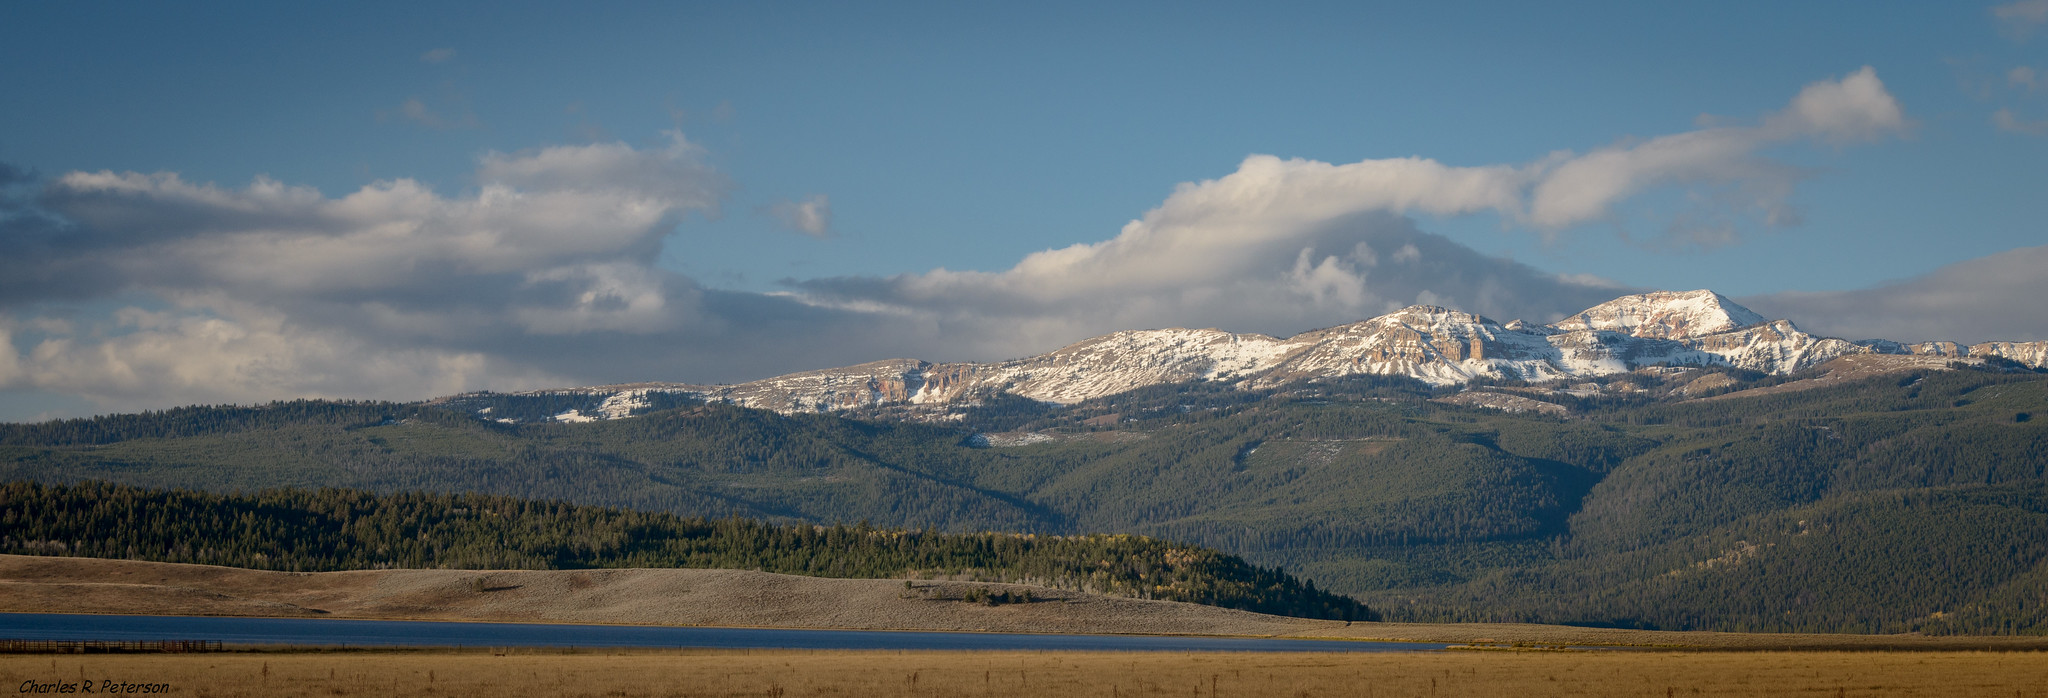 Centennial Mountain Range - Montana by Charles (Chuck) Peterson, on Flickr